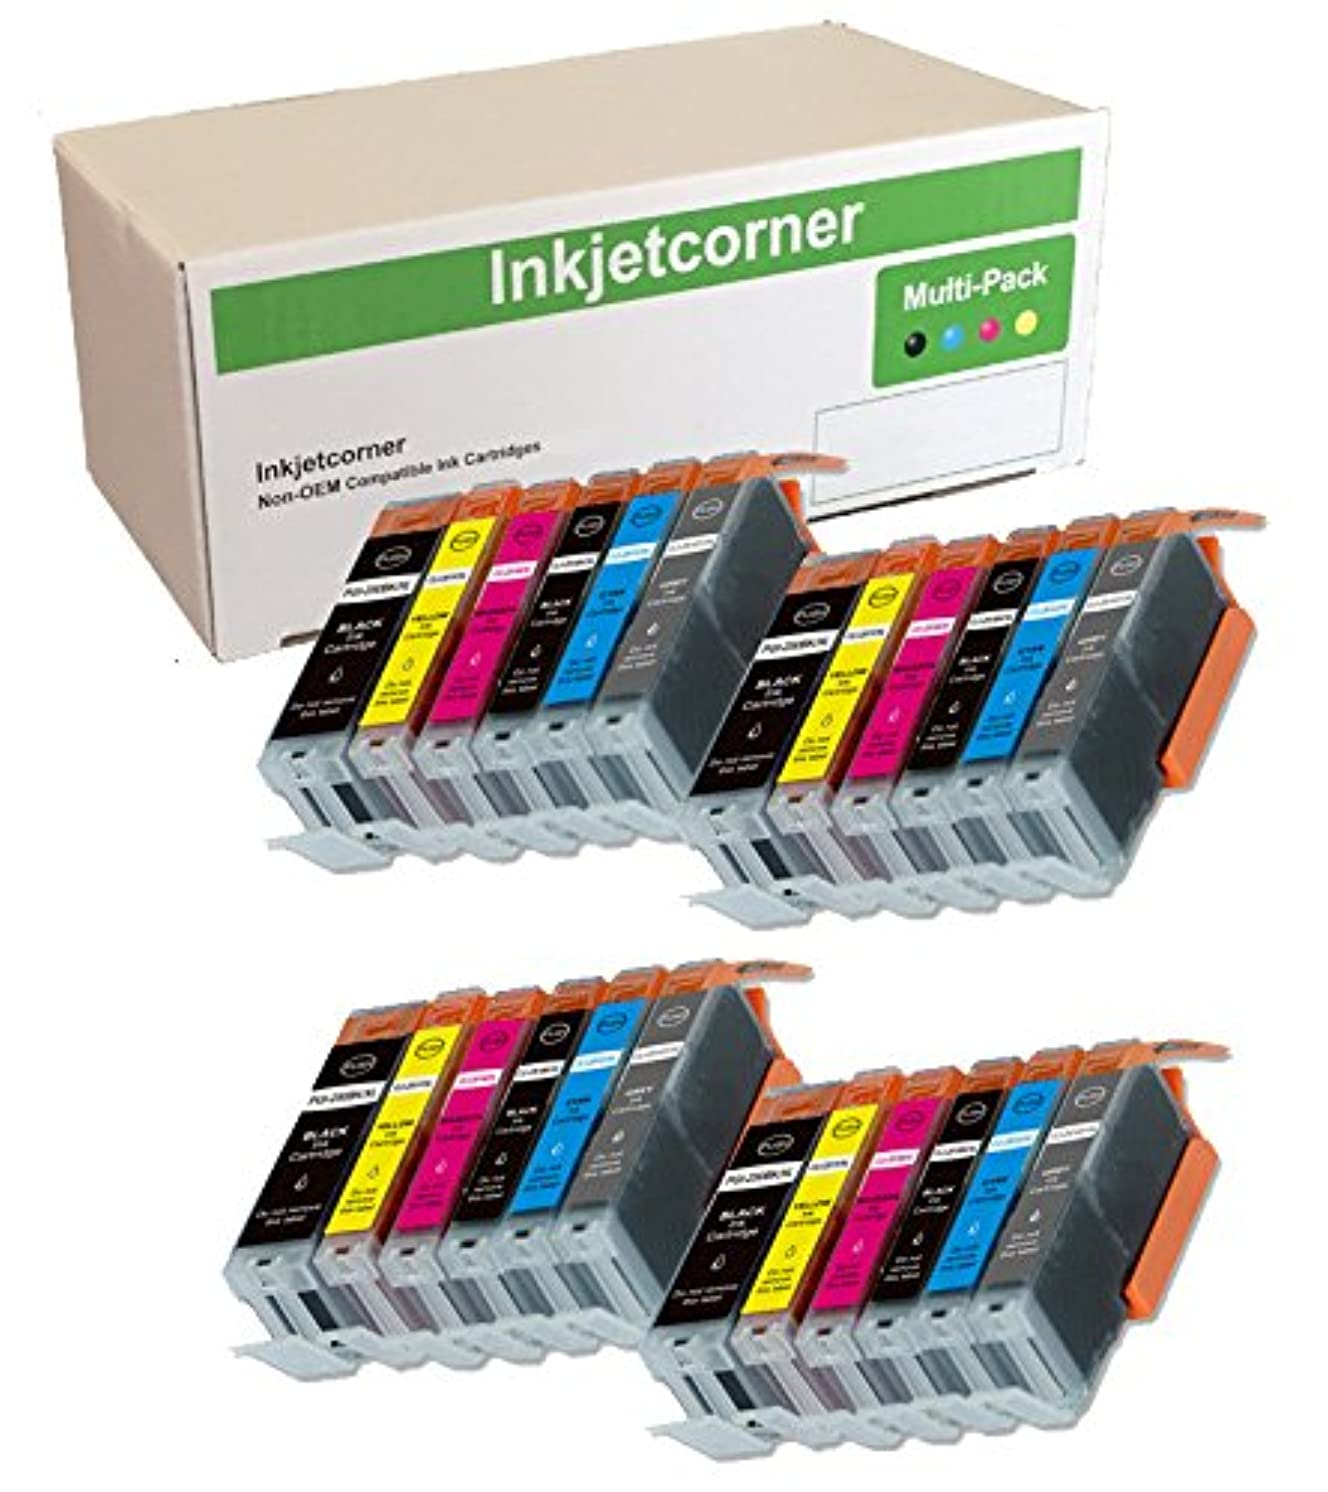 Inkjetcorner Compatible Ink Cartridges Replacement for PGI-250XL CLI-251XL PGI 250 CLI 251 for use with MG7520 MG7120 iP8720 MG6320 (4 Big Black 4 Black 4 Cyan 4 Magenta 4 Yellow 4 Gray, 24-Pack)